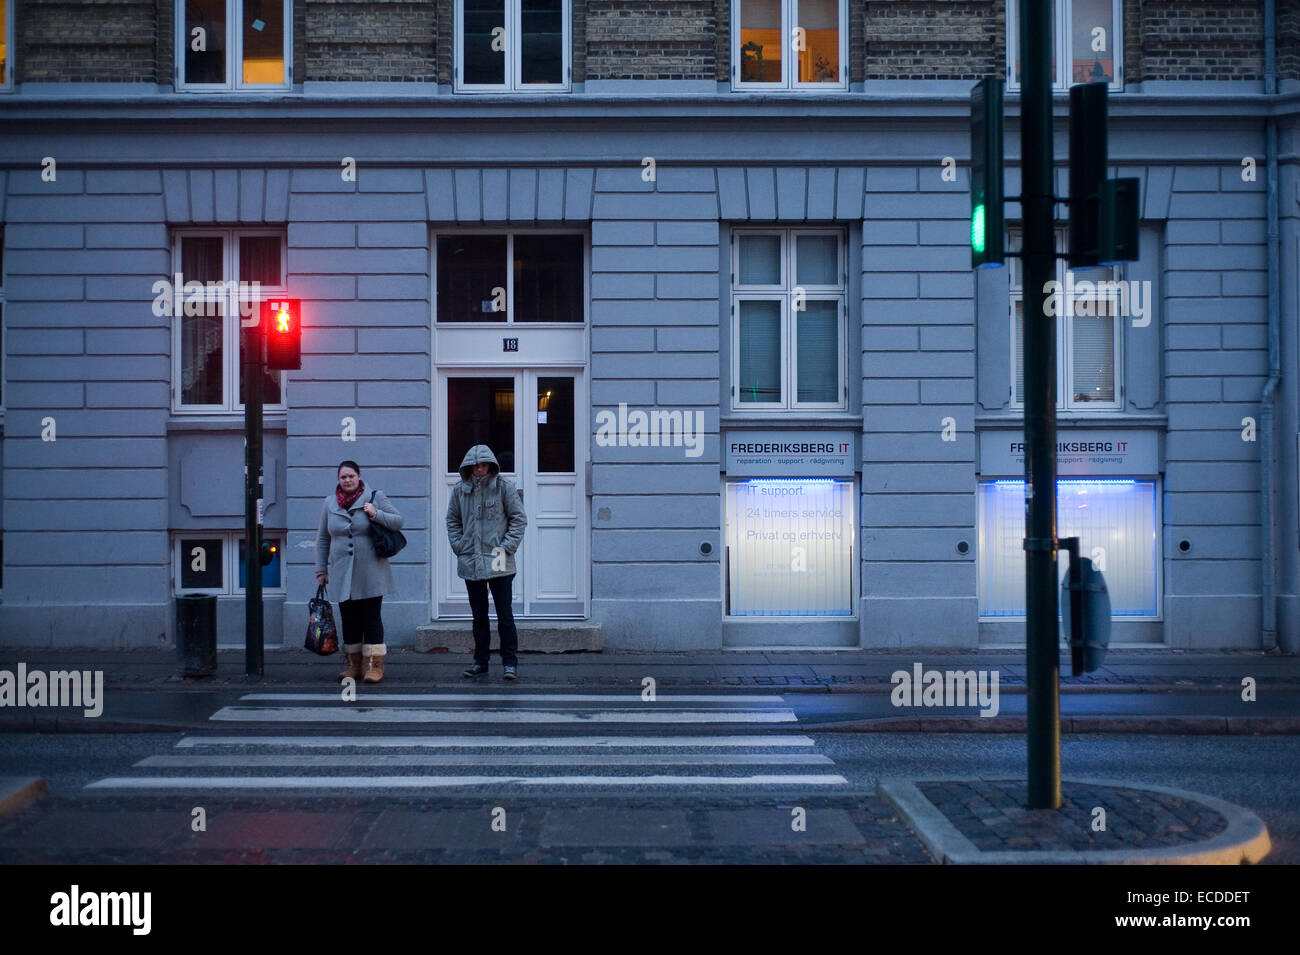 Red Green Blue bleak lonely street scene from Copenhagen street - Stock Image